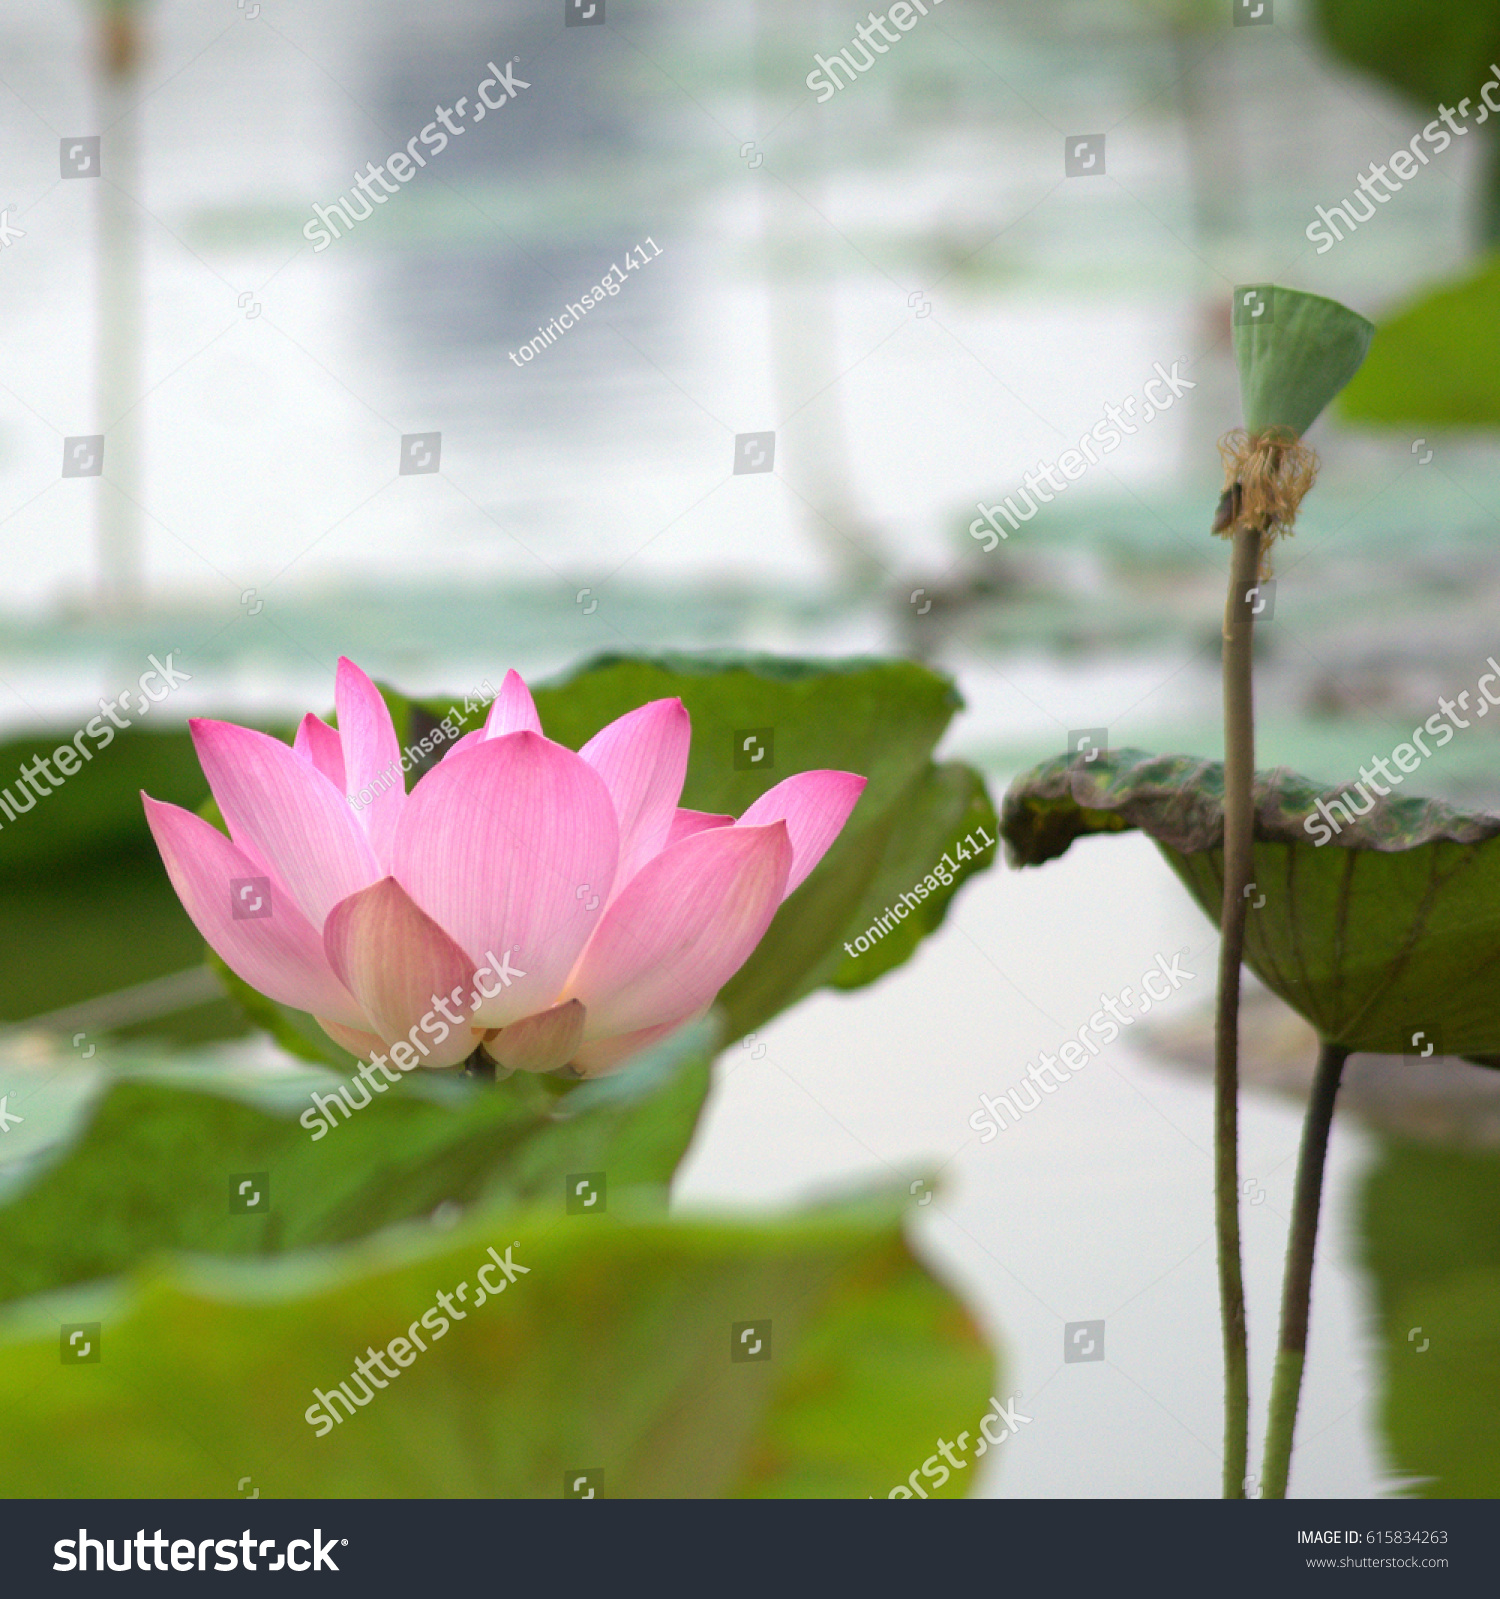 Beautiful lotus flower garden complimented by stock photo edit now the beautiful lotus flower garden complimented by the rich colors of the deep blue water surface izmirmasajfo